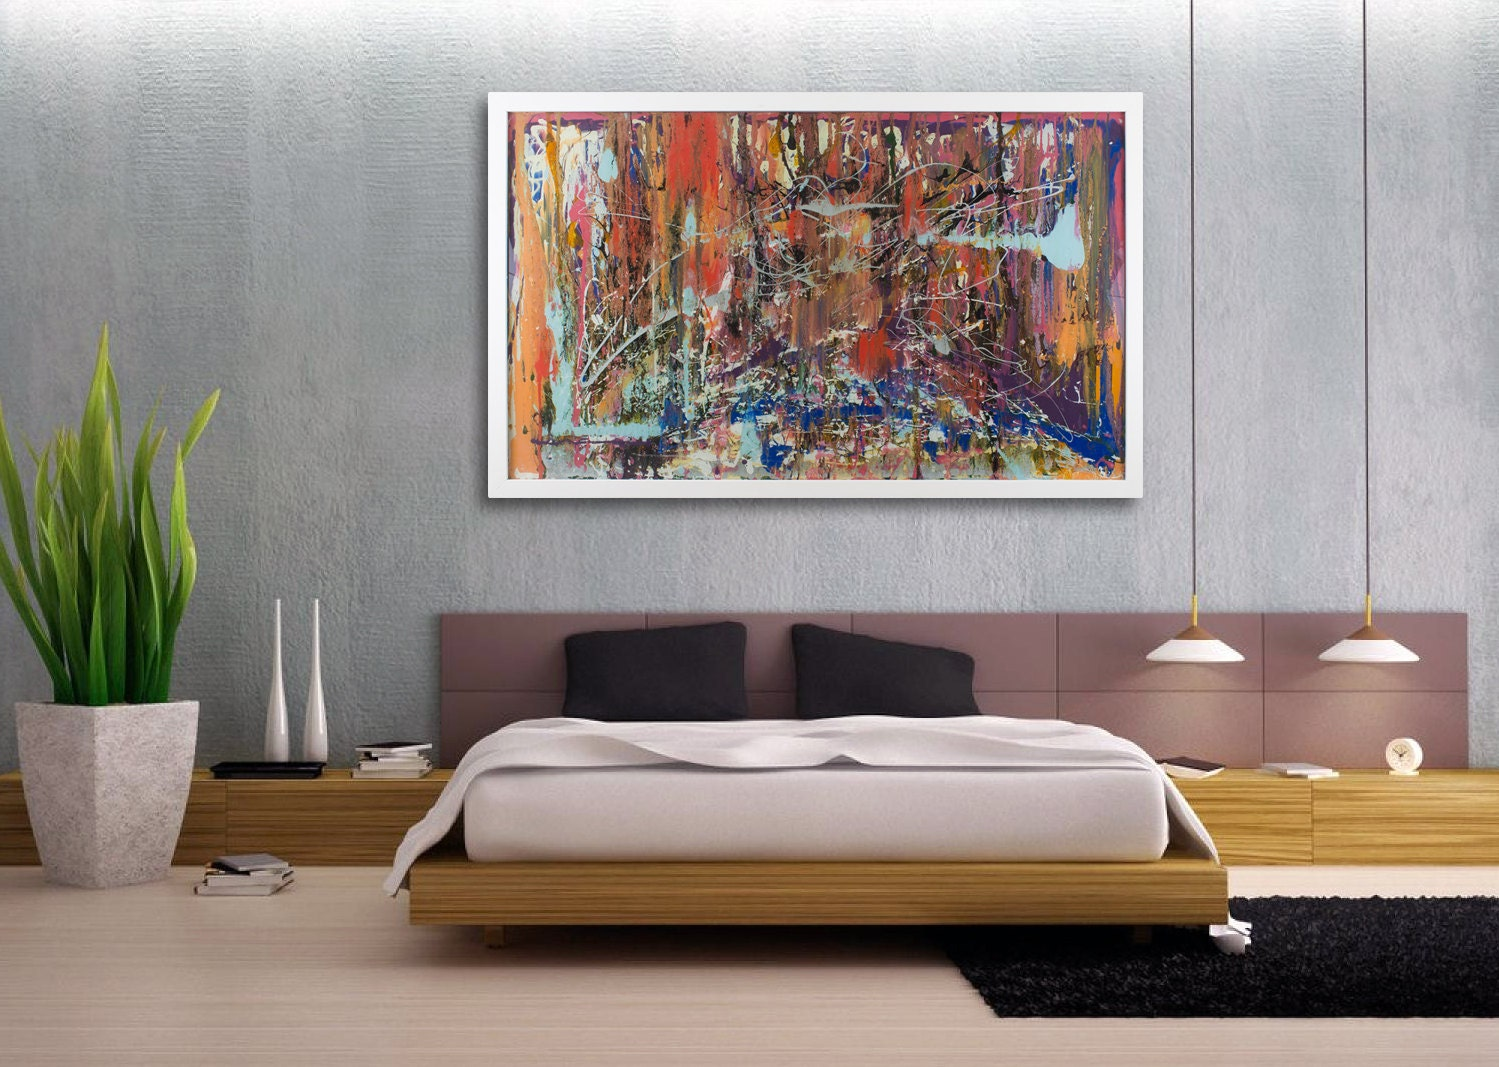 Large abstract art extra large art wall art modern glass for Large glass wall